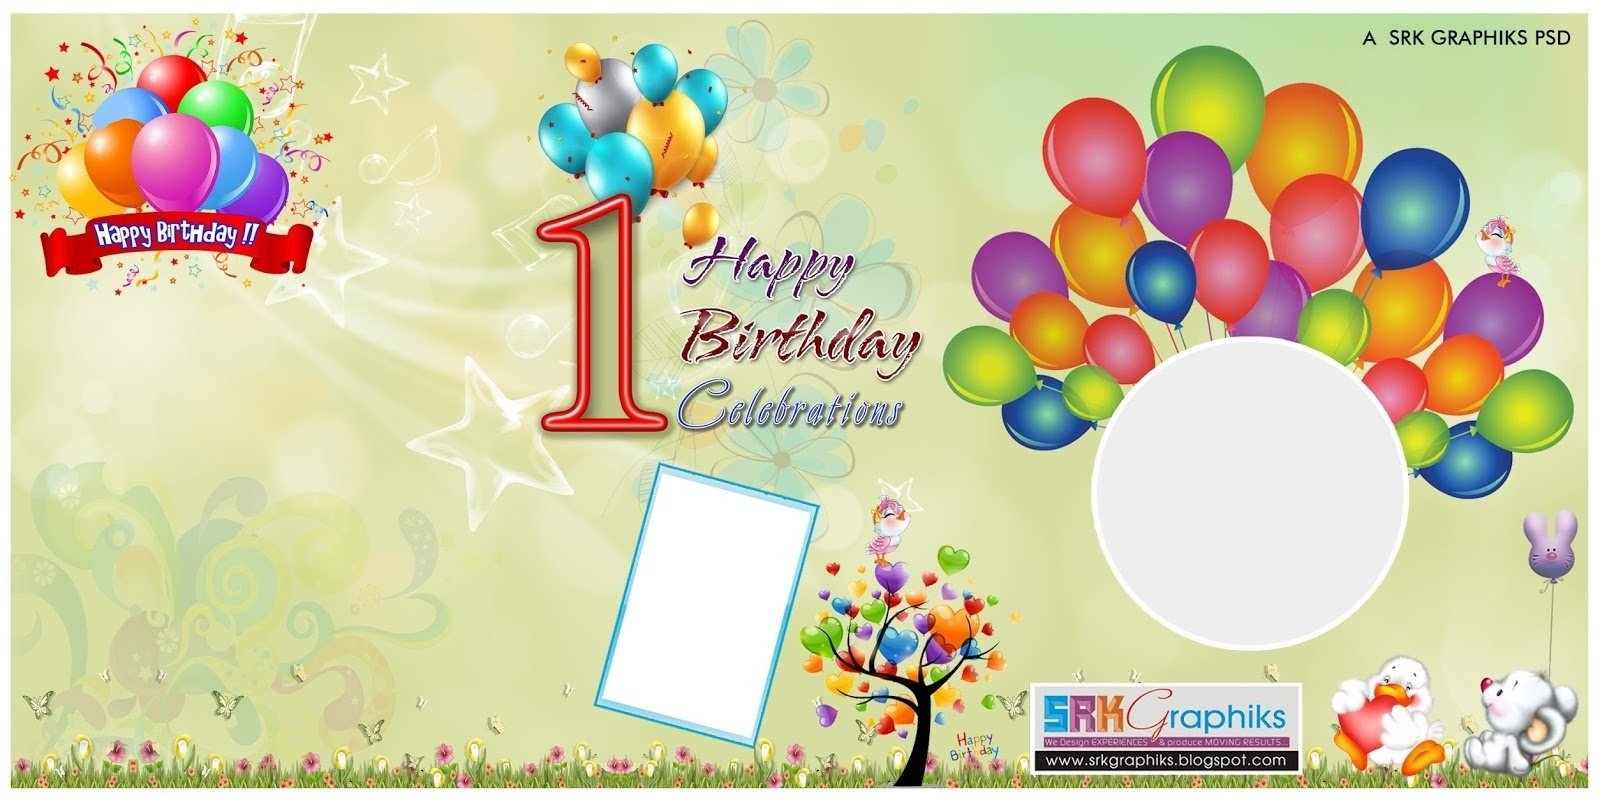 birthday banner background images ; birthday-banner-design-photoshop-template-for-free-srk-graphics-with-birthday-flex-banner-background-design